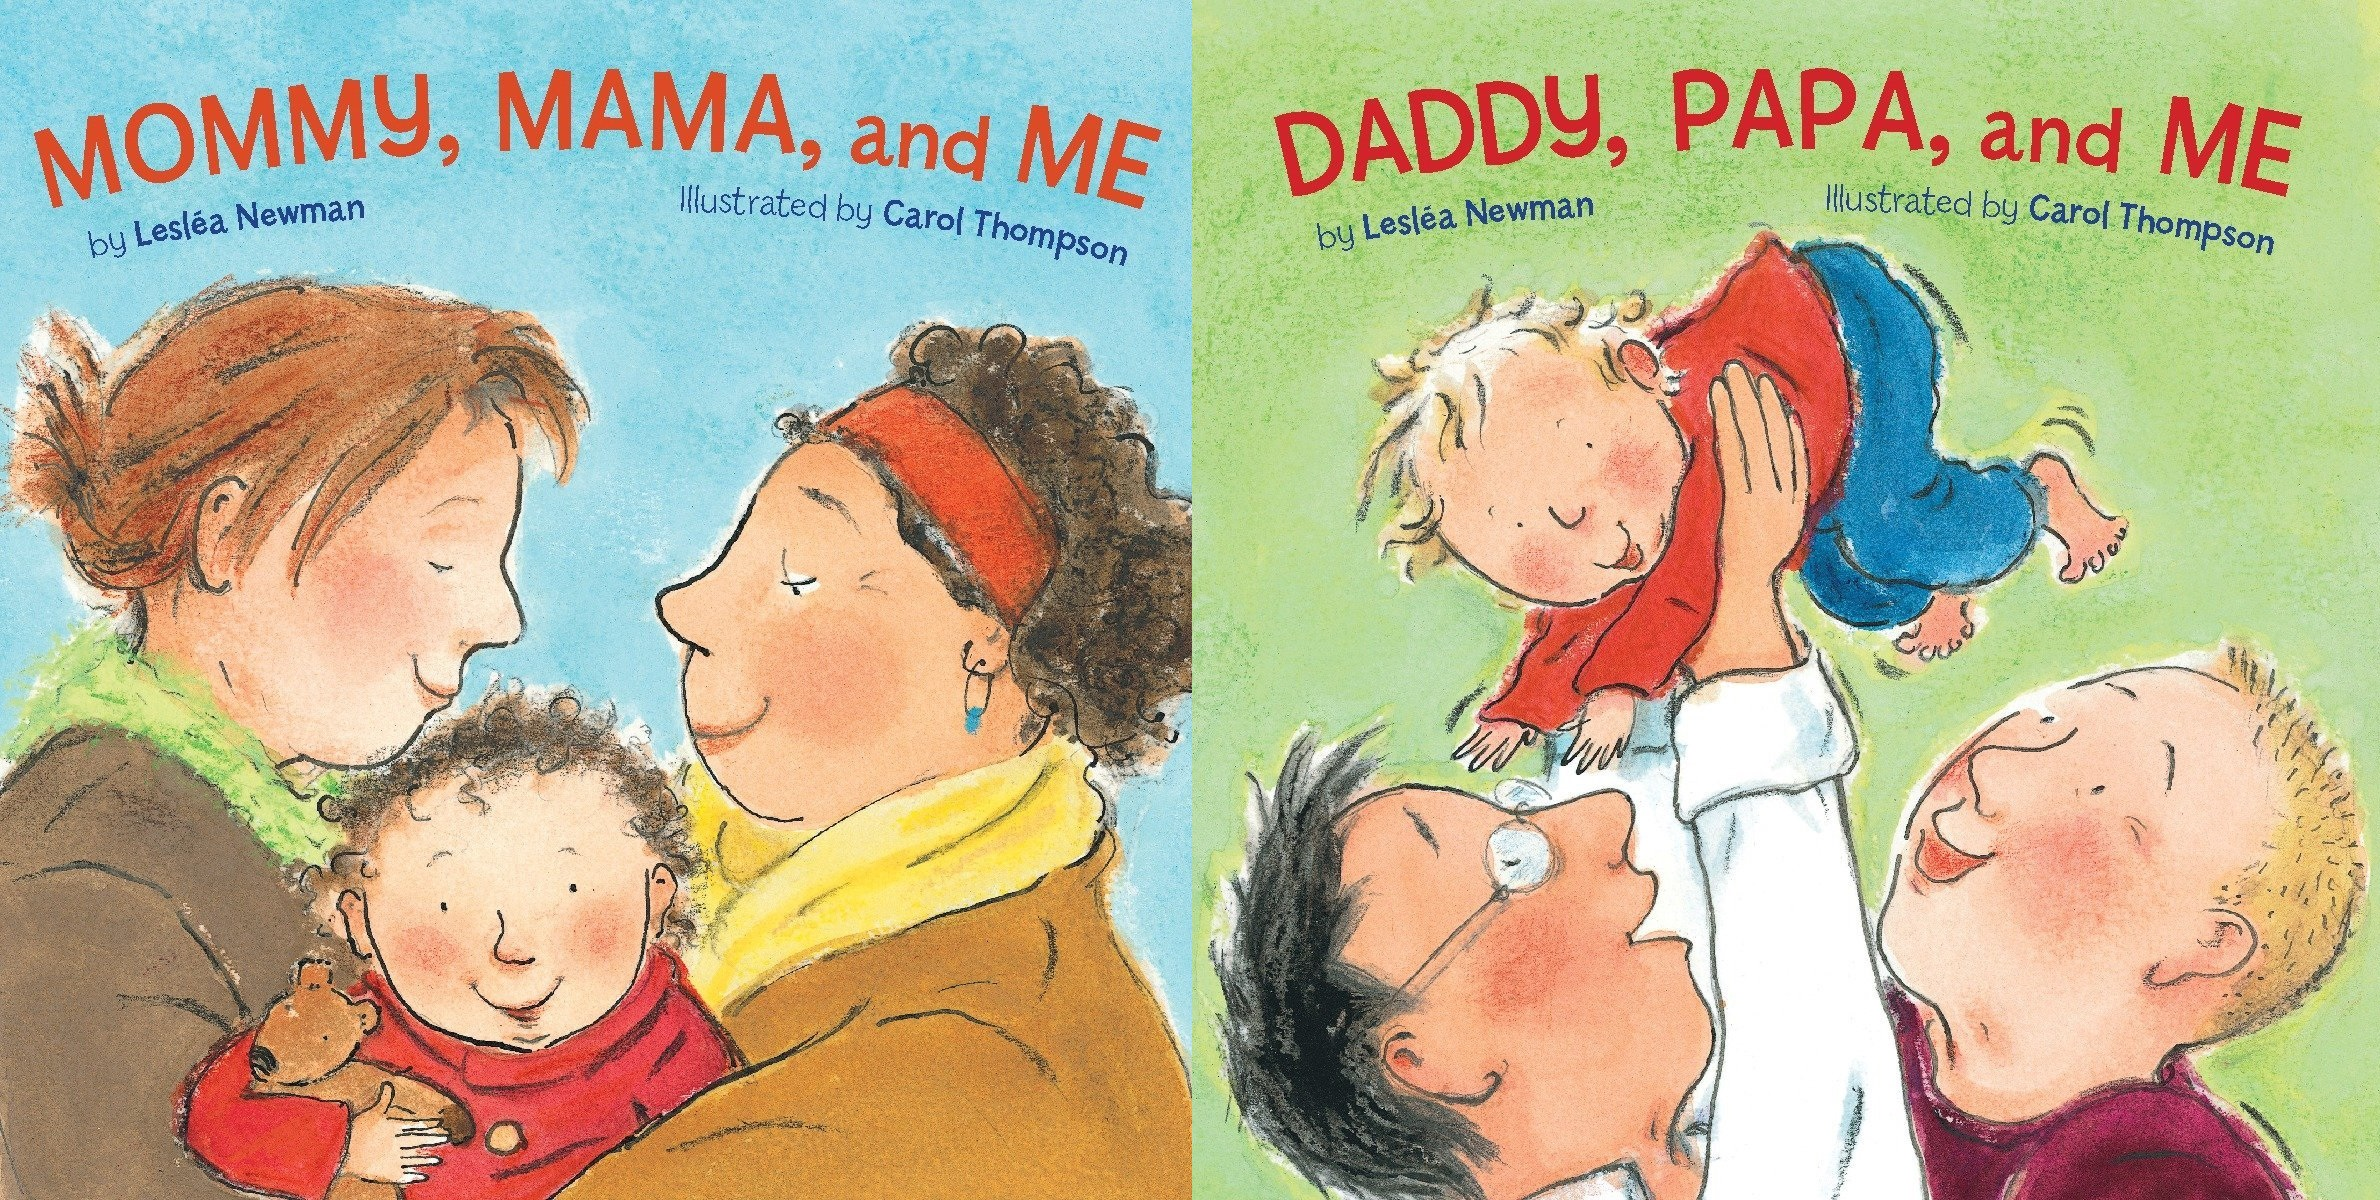 Books used as part of LGBT+ inclusive education lessons to teach about same-sex relationships